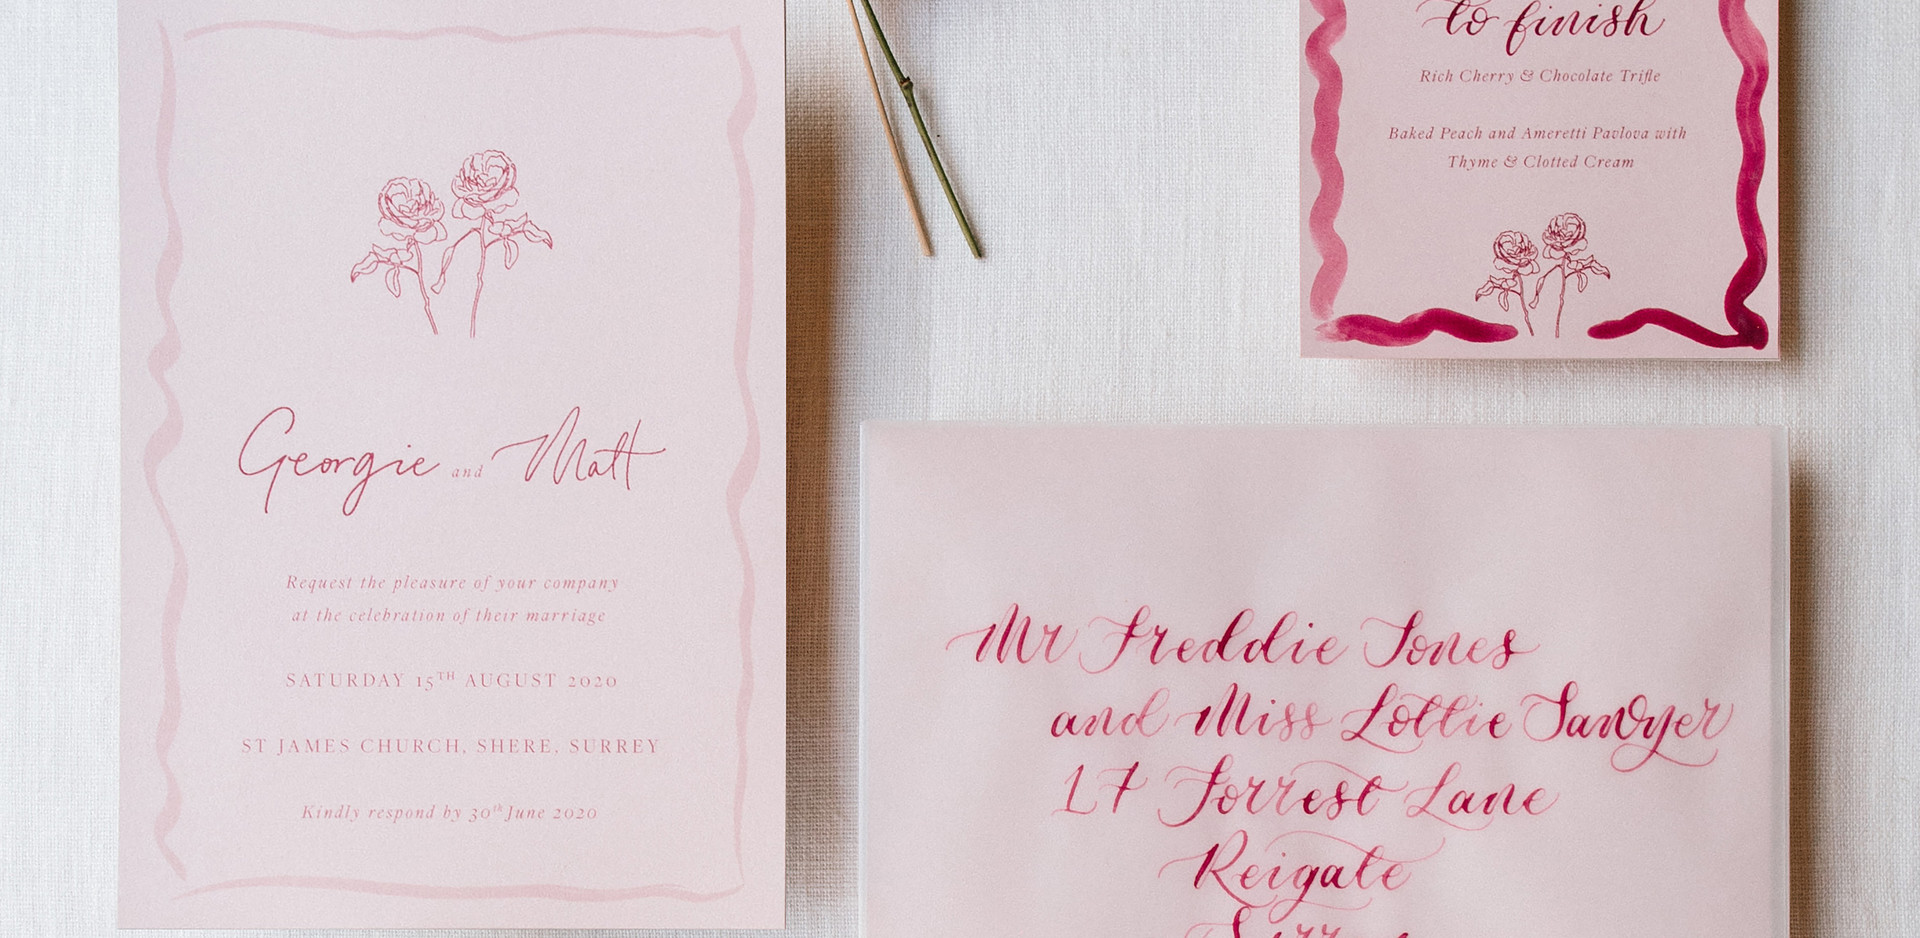 Handpainted bespoke wedding stationery.j